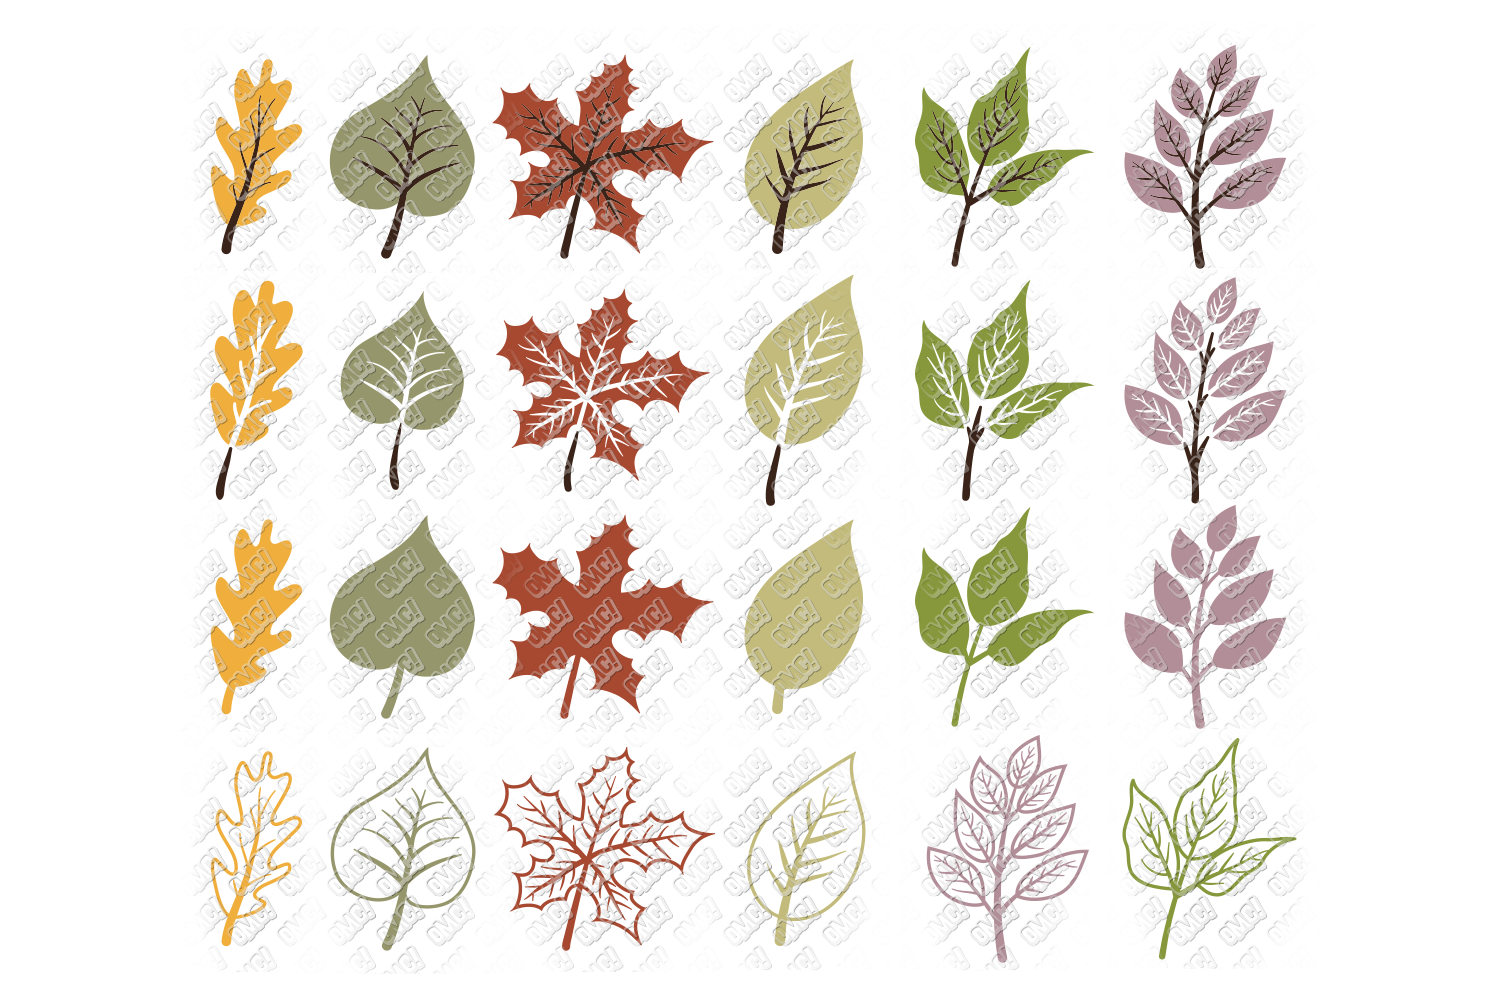 Leaf SVG Fall Leaves Autumn in SVG, DXF, PNG, EPS, JPEG example image 2